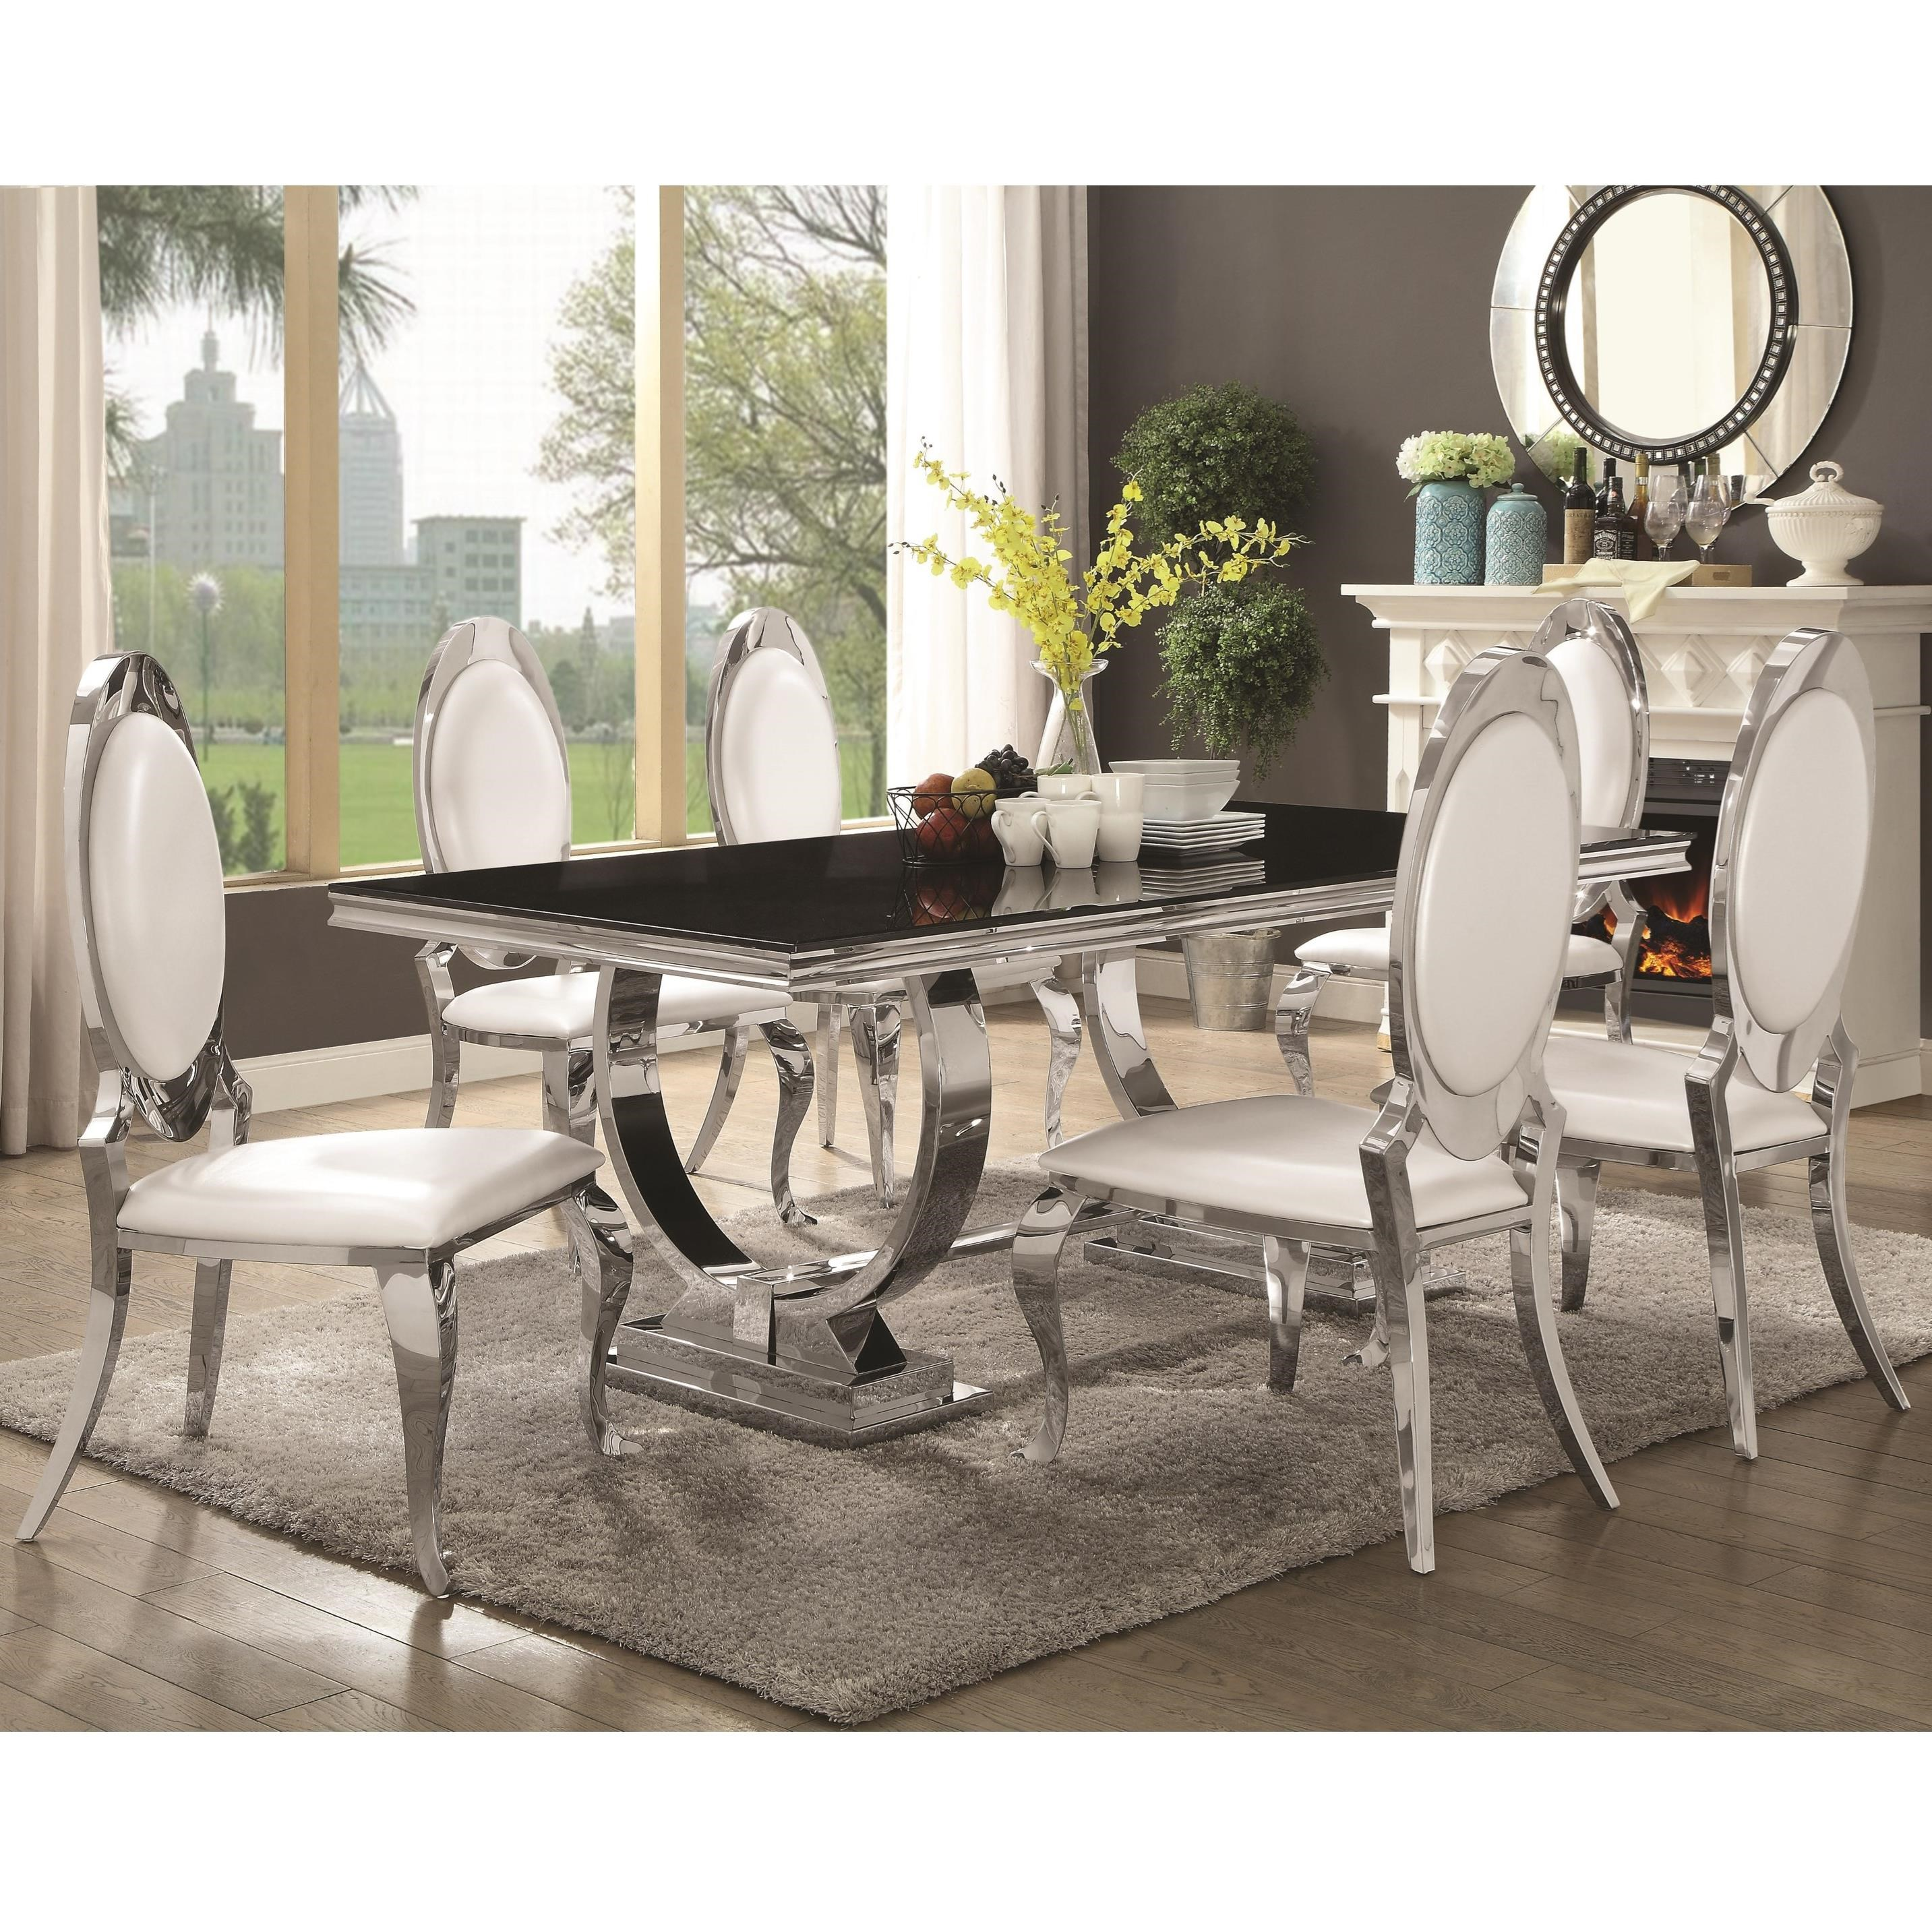 Antoine 7 Piece Dining Set by Coaster at Northeast Factory Direct